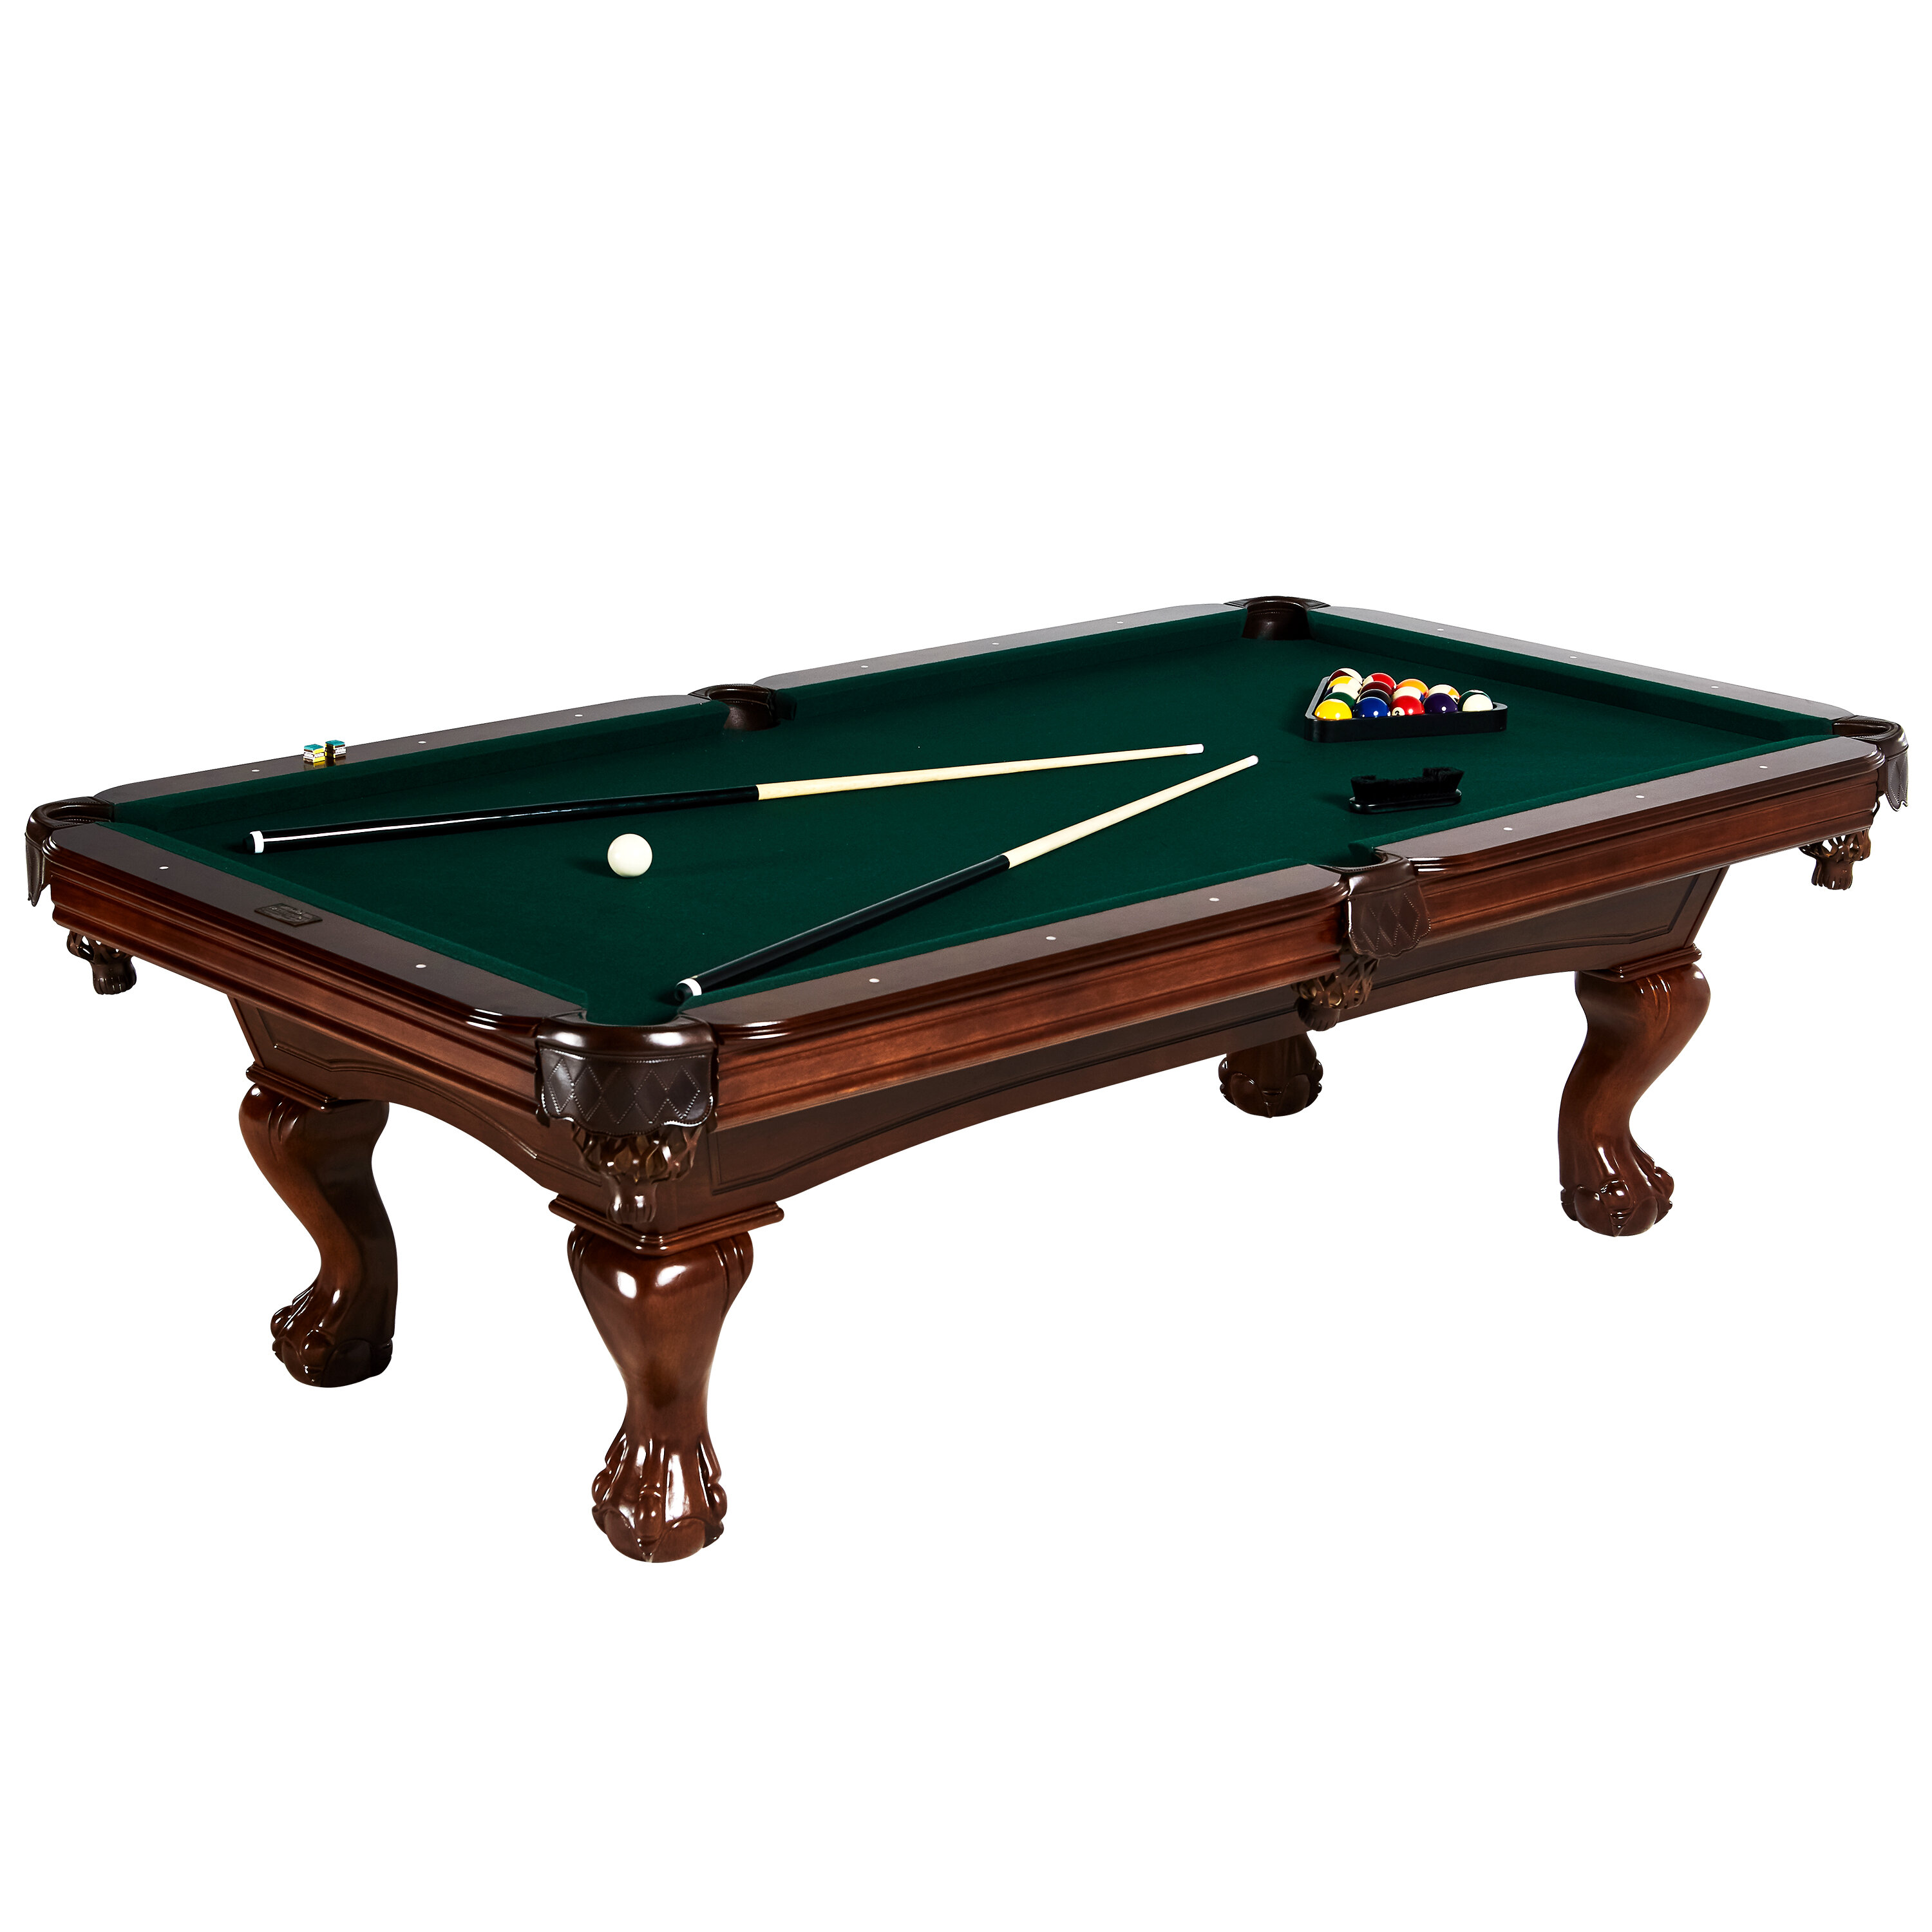 Barrington Billiards Company Barrington Hawthorne Pool Table - Pool table cloth replacement price